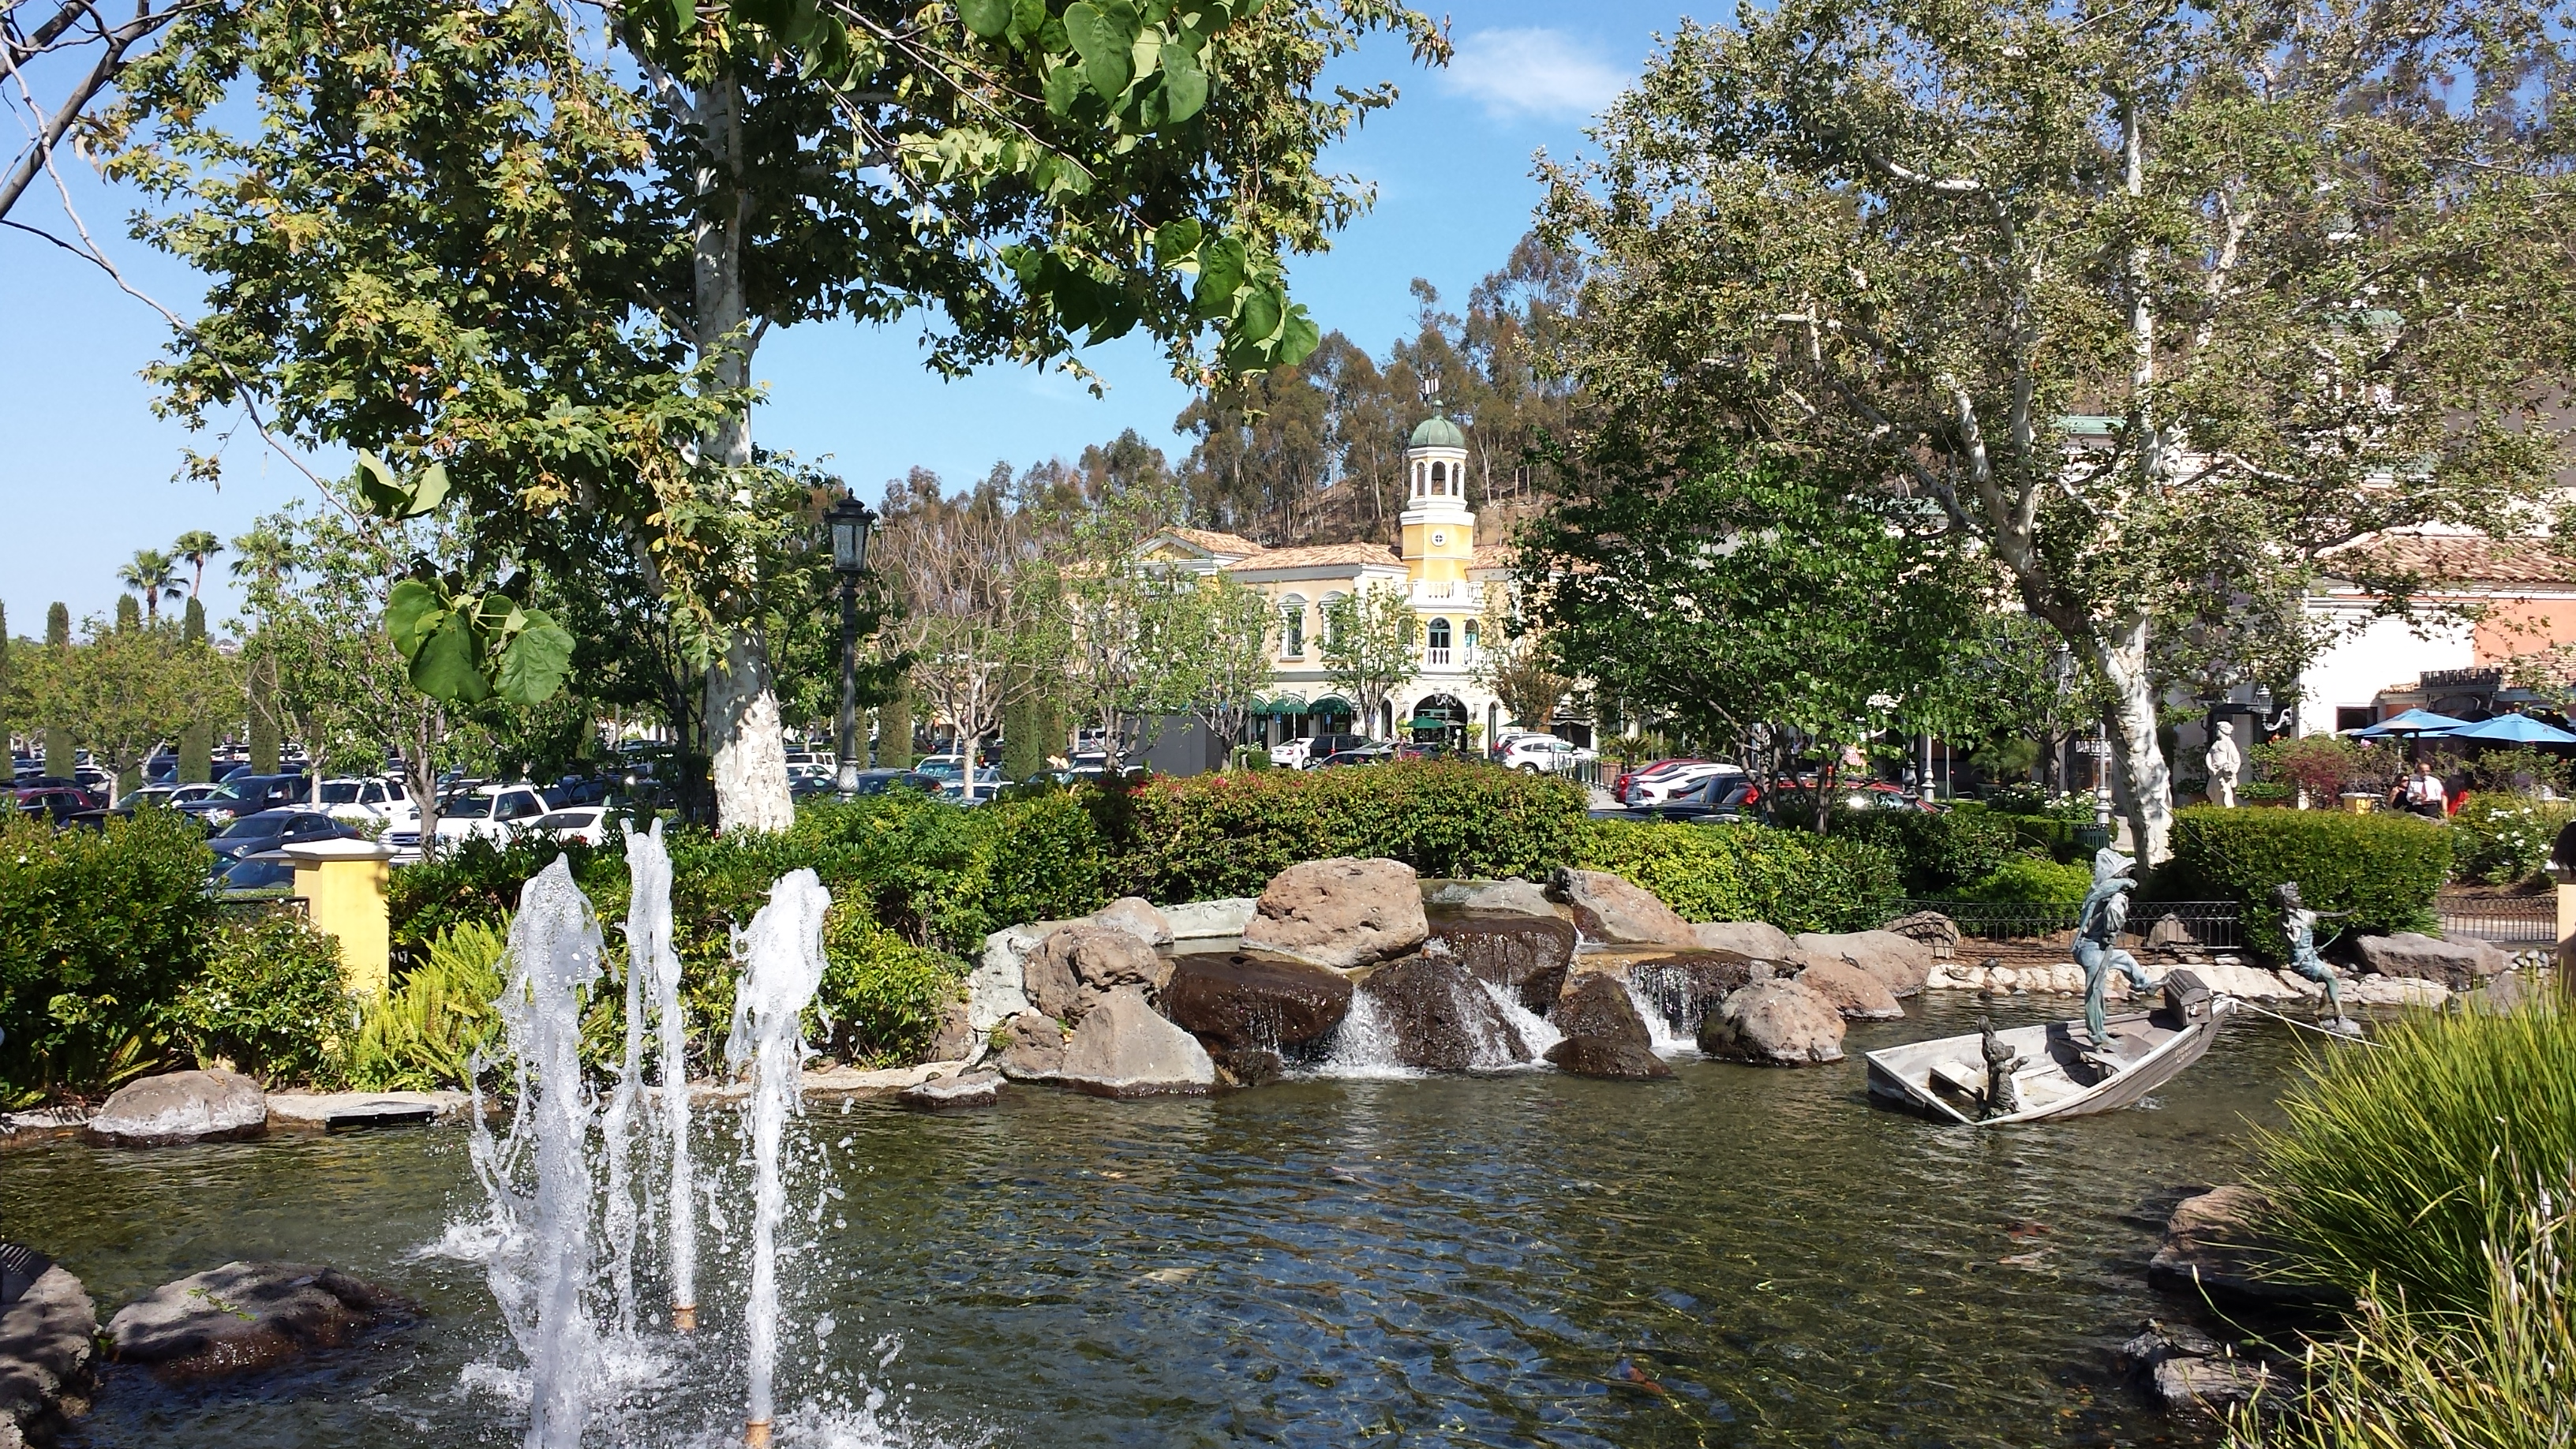 Where is/are the main center(s) for services in California located?